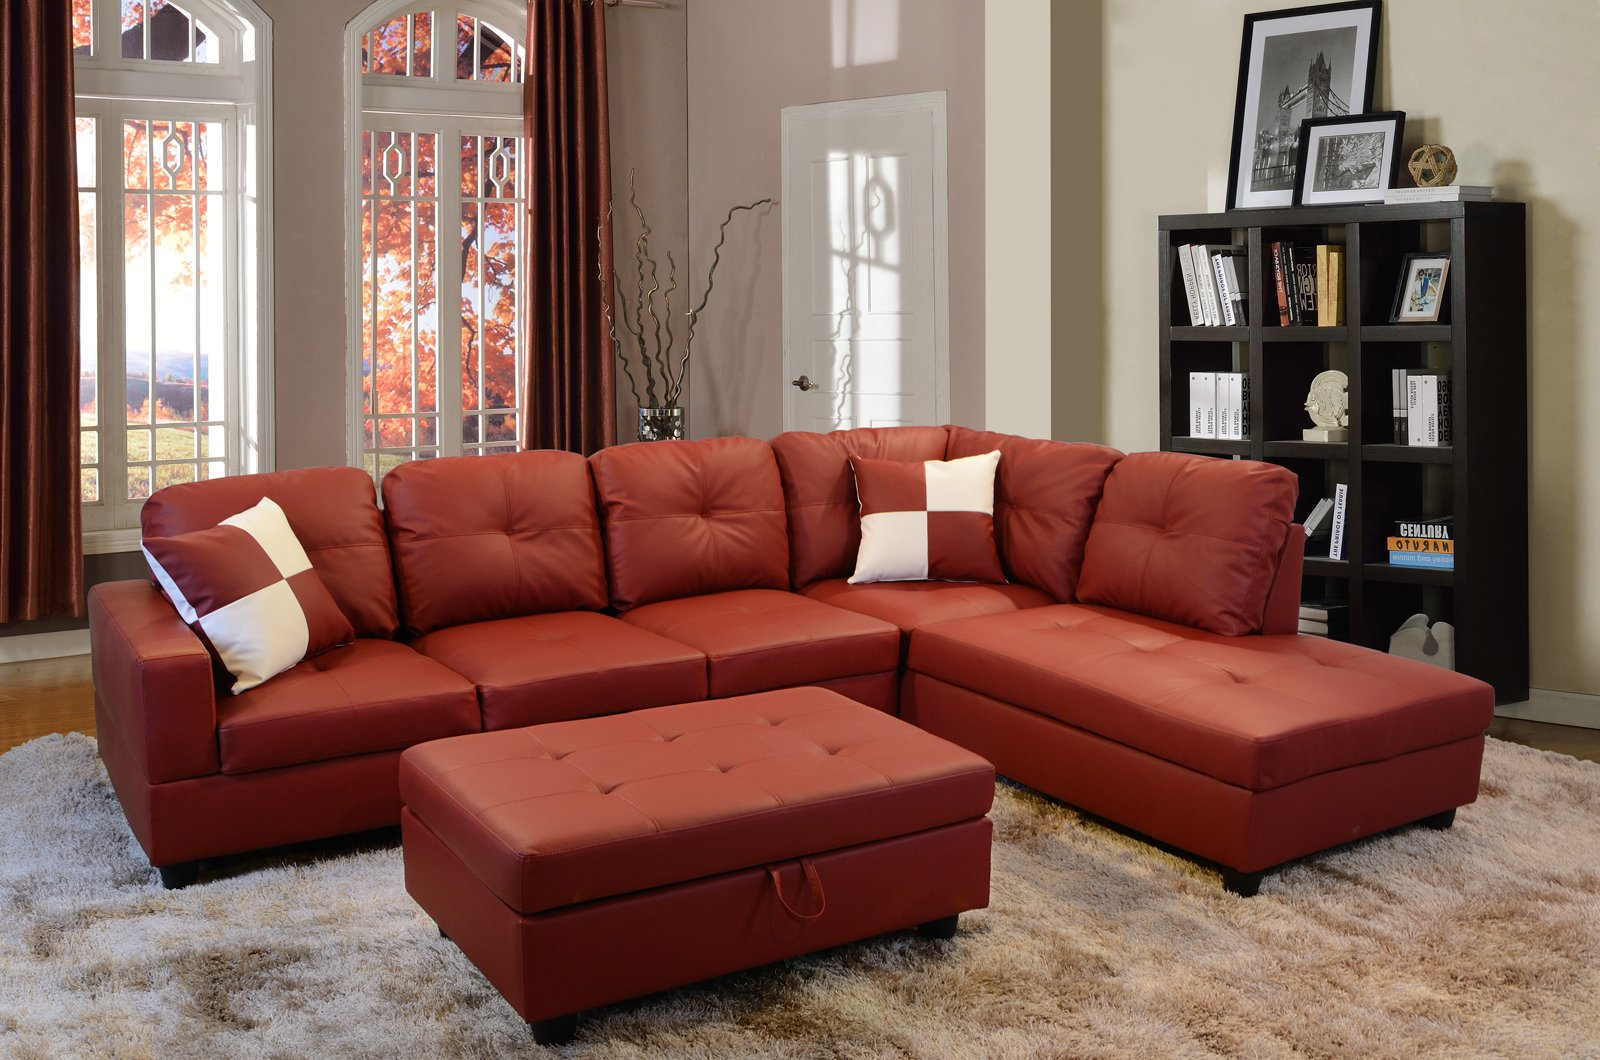 Lifestyle Furniture Right Facing 3PC Sectional Sofa Set,Faux Leather,Red(LS094B) by Lifestyle